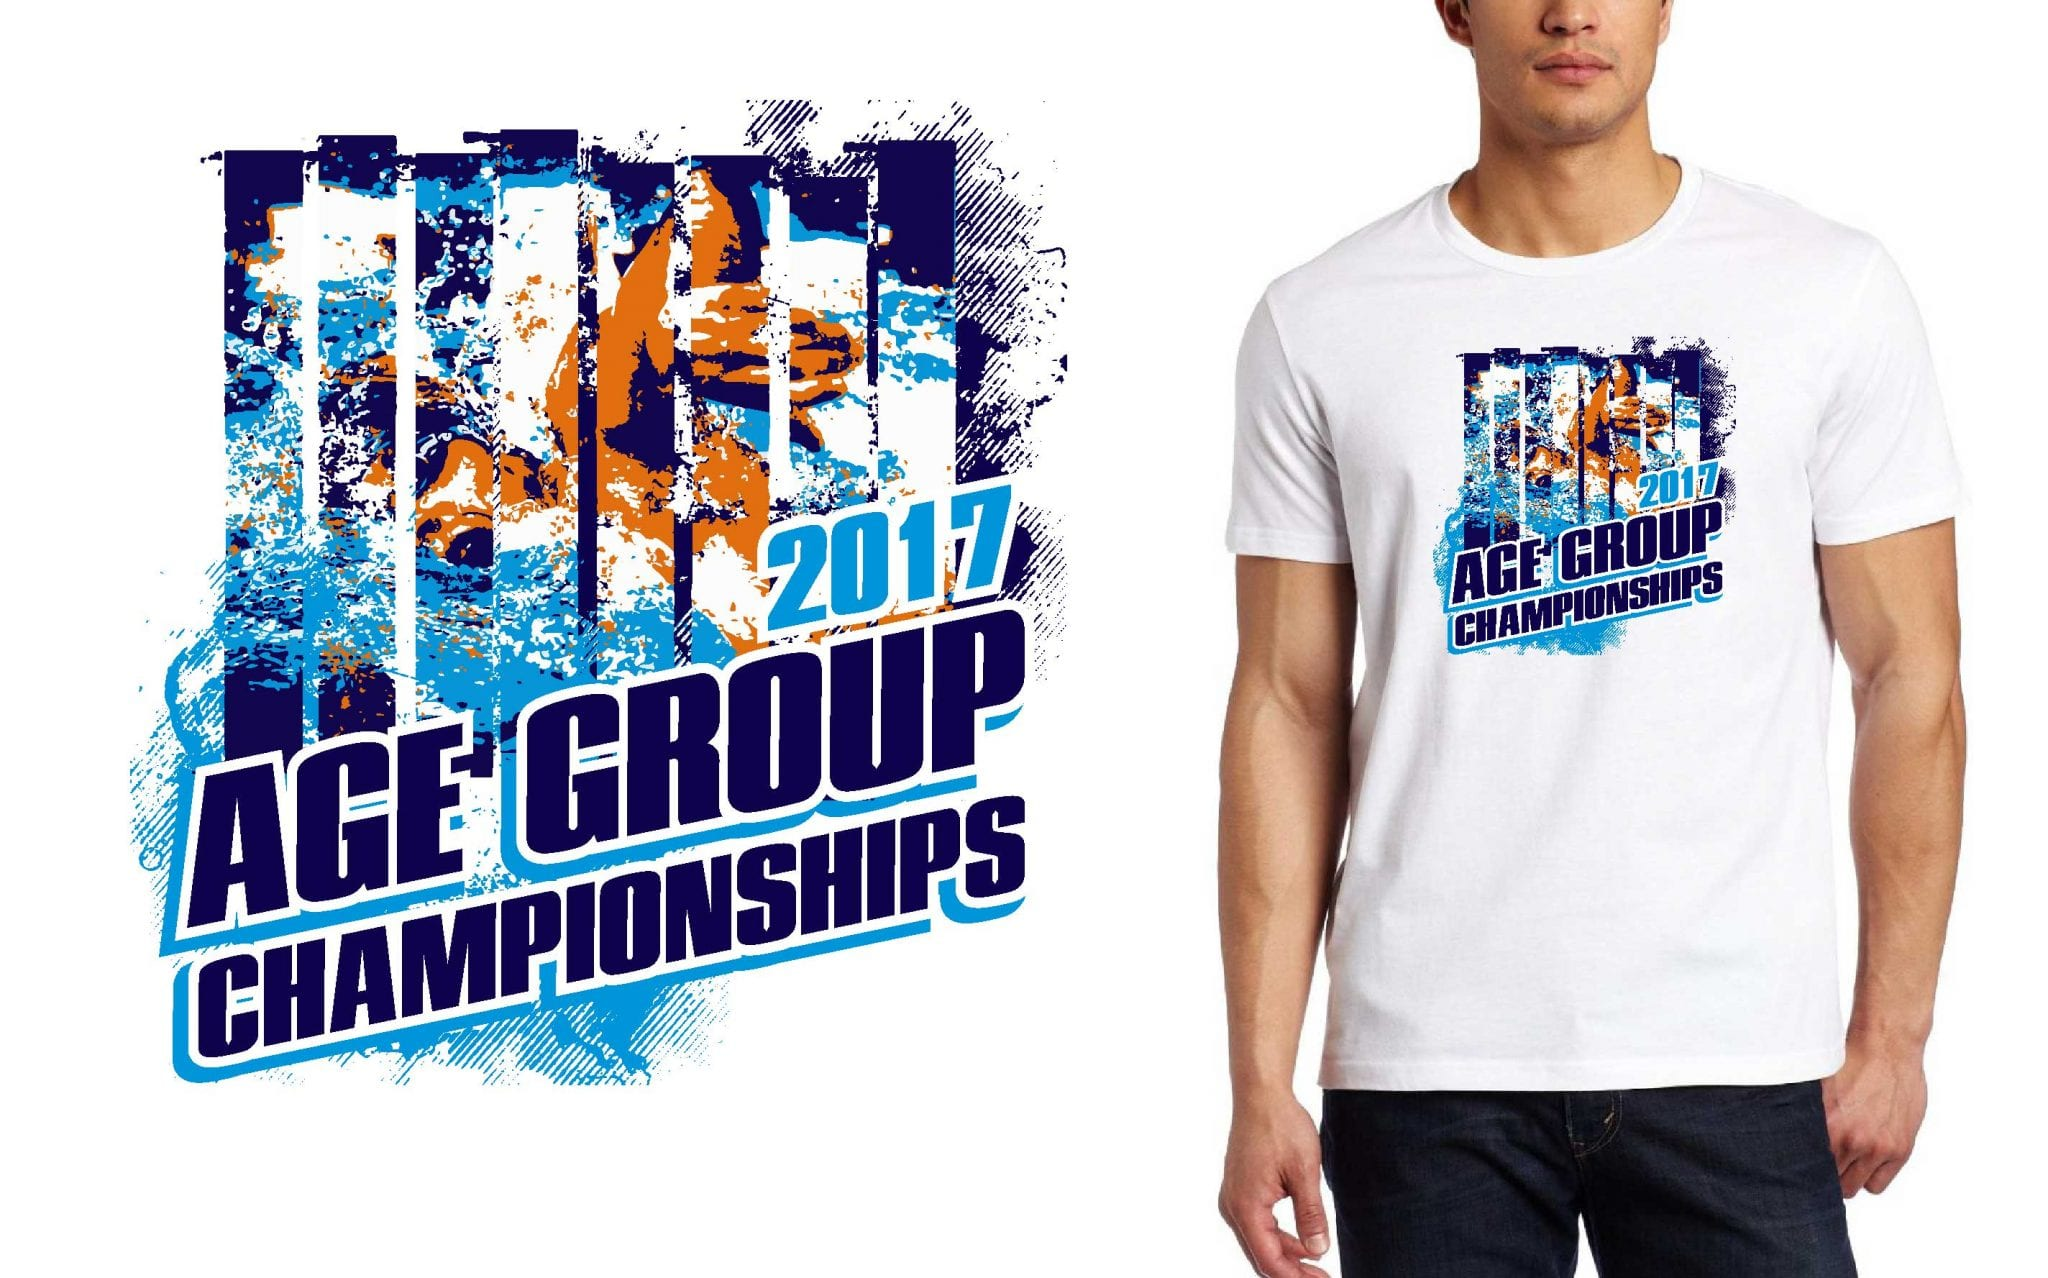 SWIMMING LOGO for NAge-Group-Championships T-SHIRT UrArtStudio